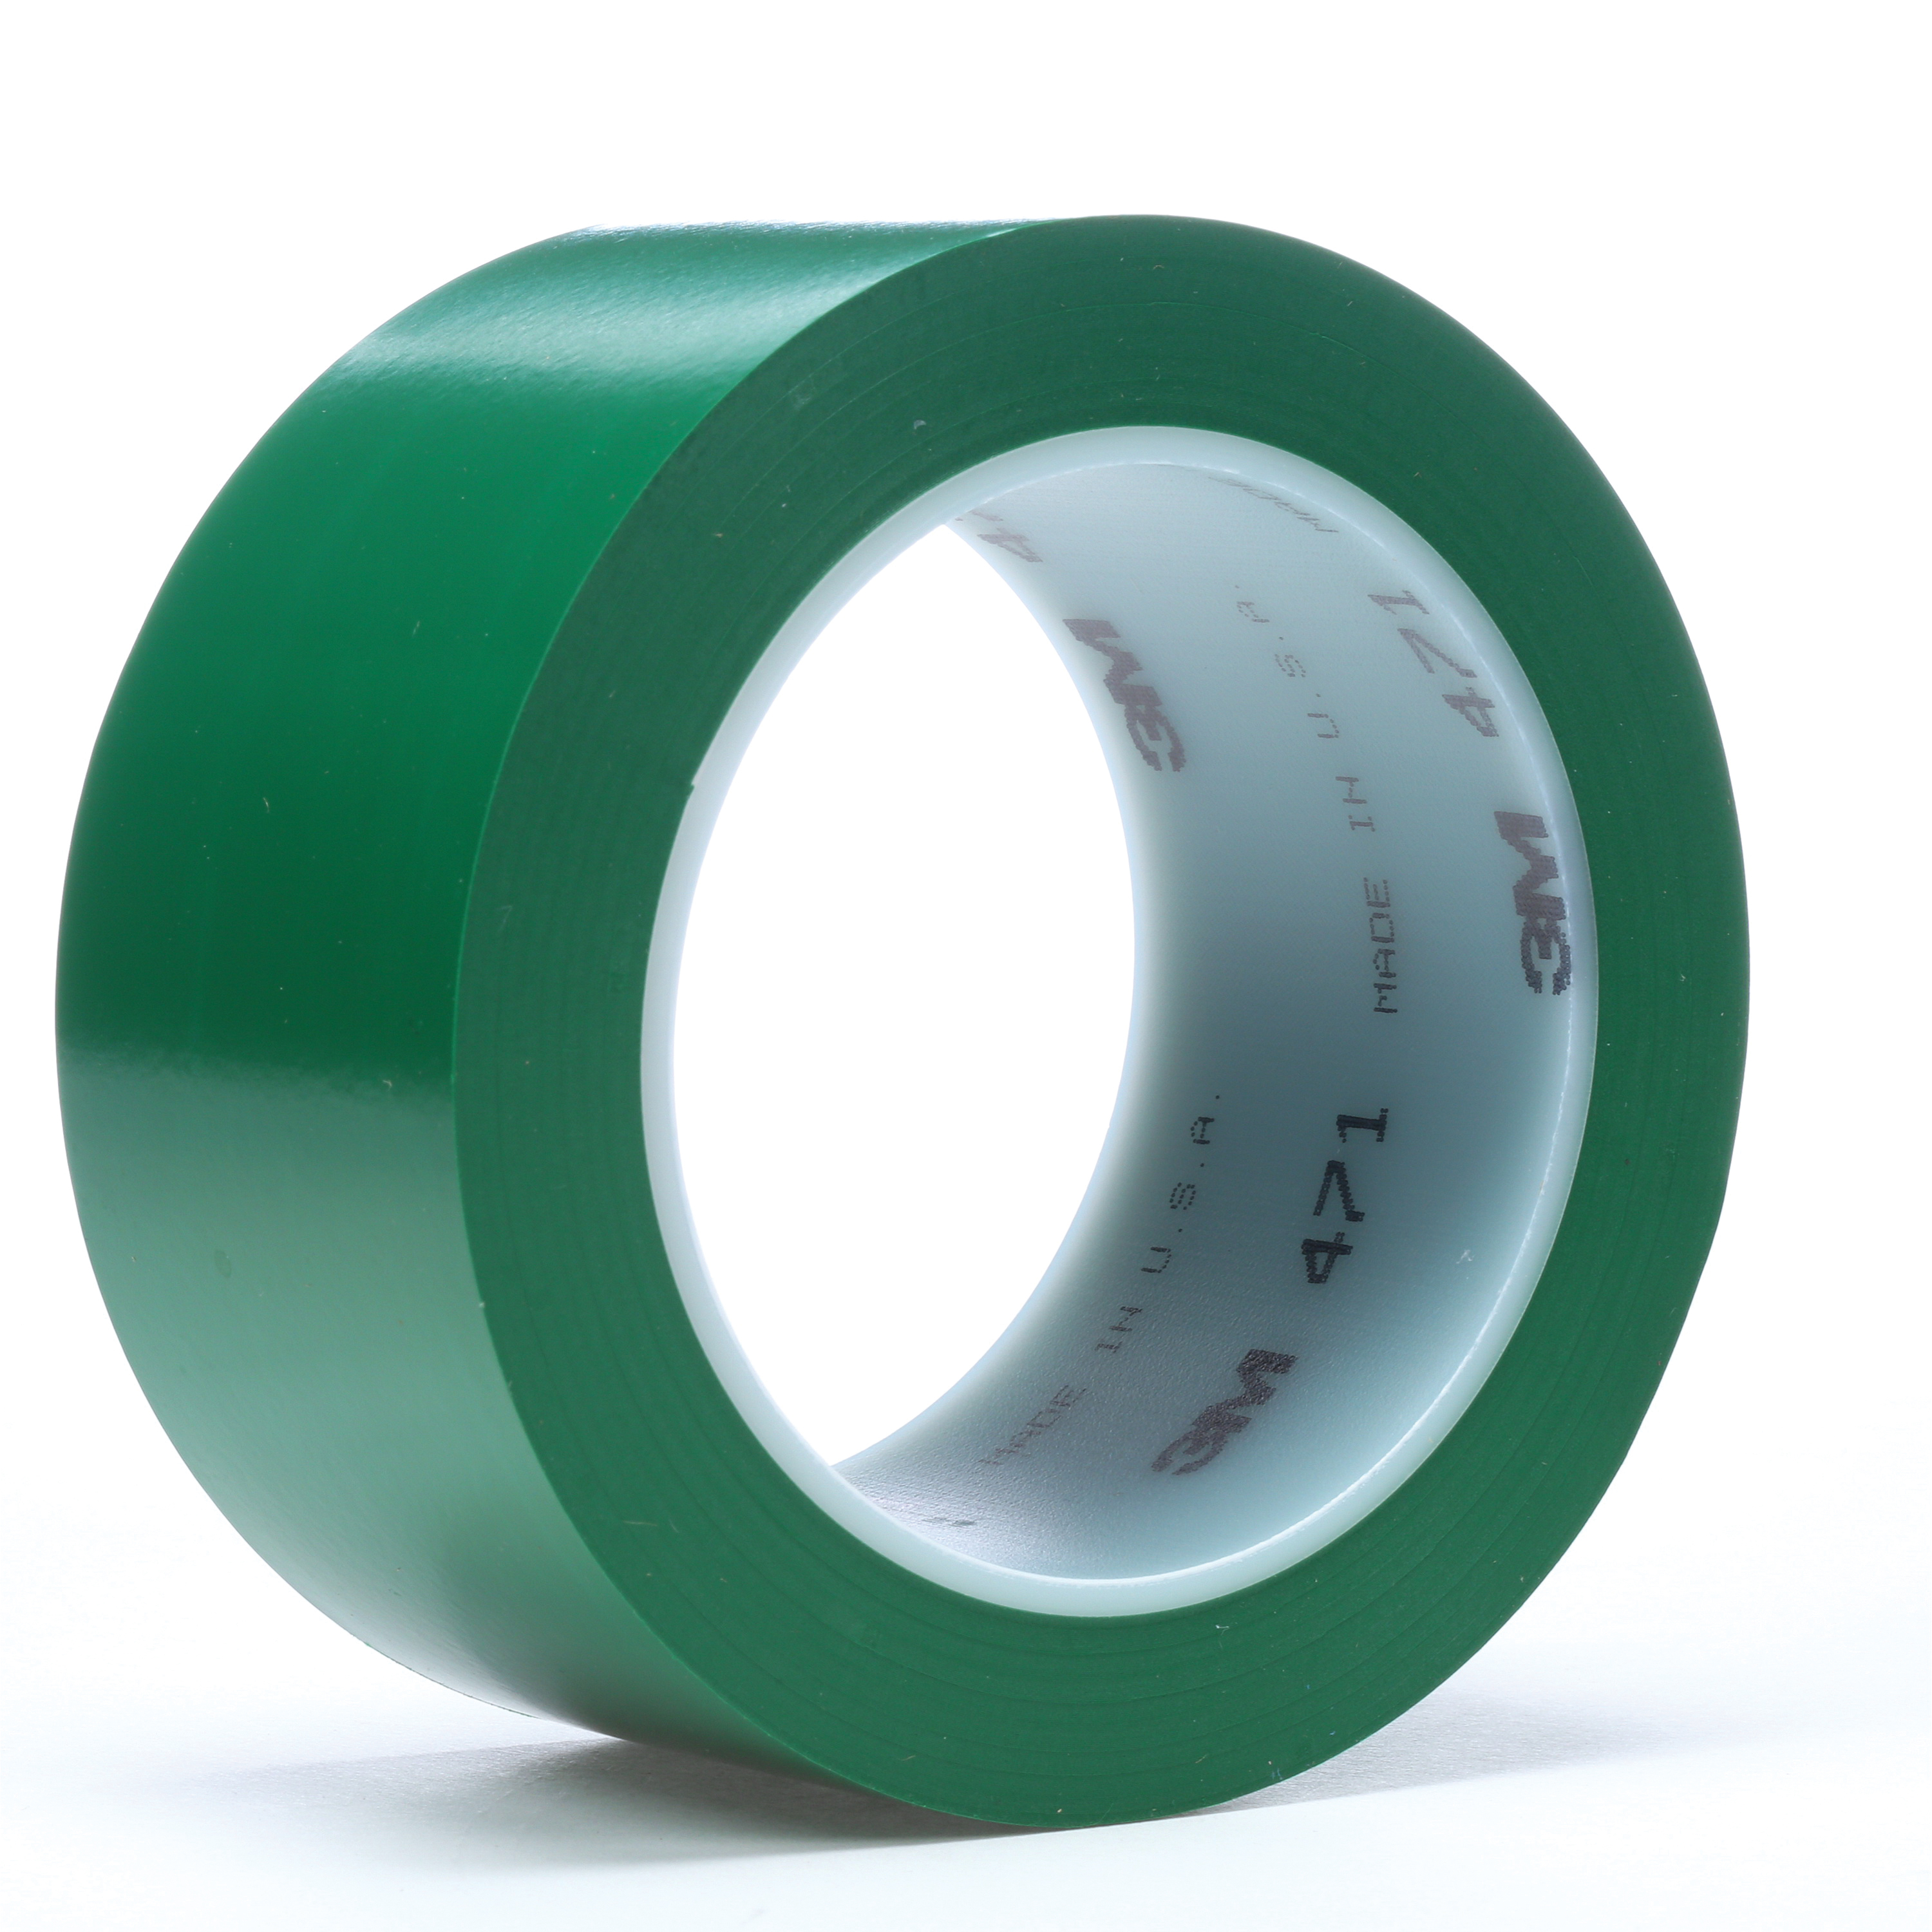 3M™ 021200-06468 High Performance Vinyl Tape, 36 yd L x 3 in W, 5.2 mil THK, Rubber Adhesive, Vinyl Backing, Green